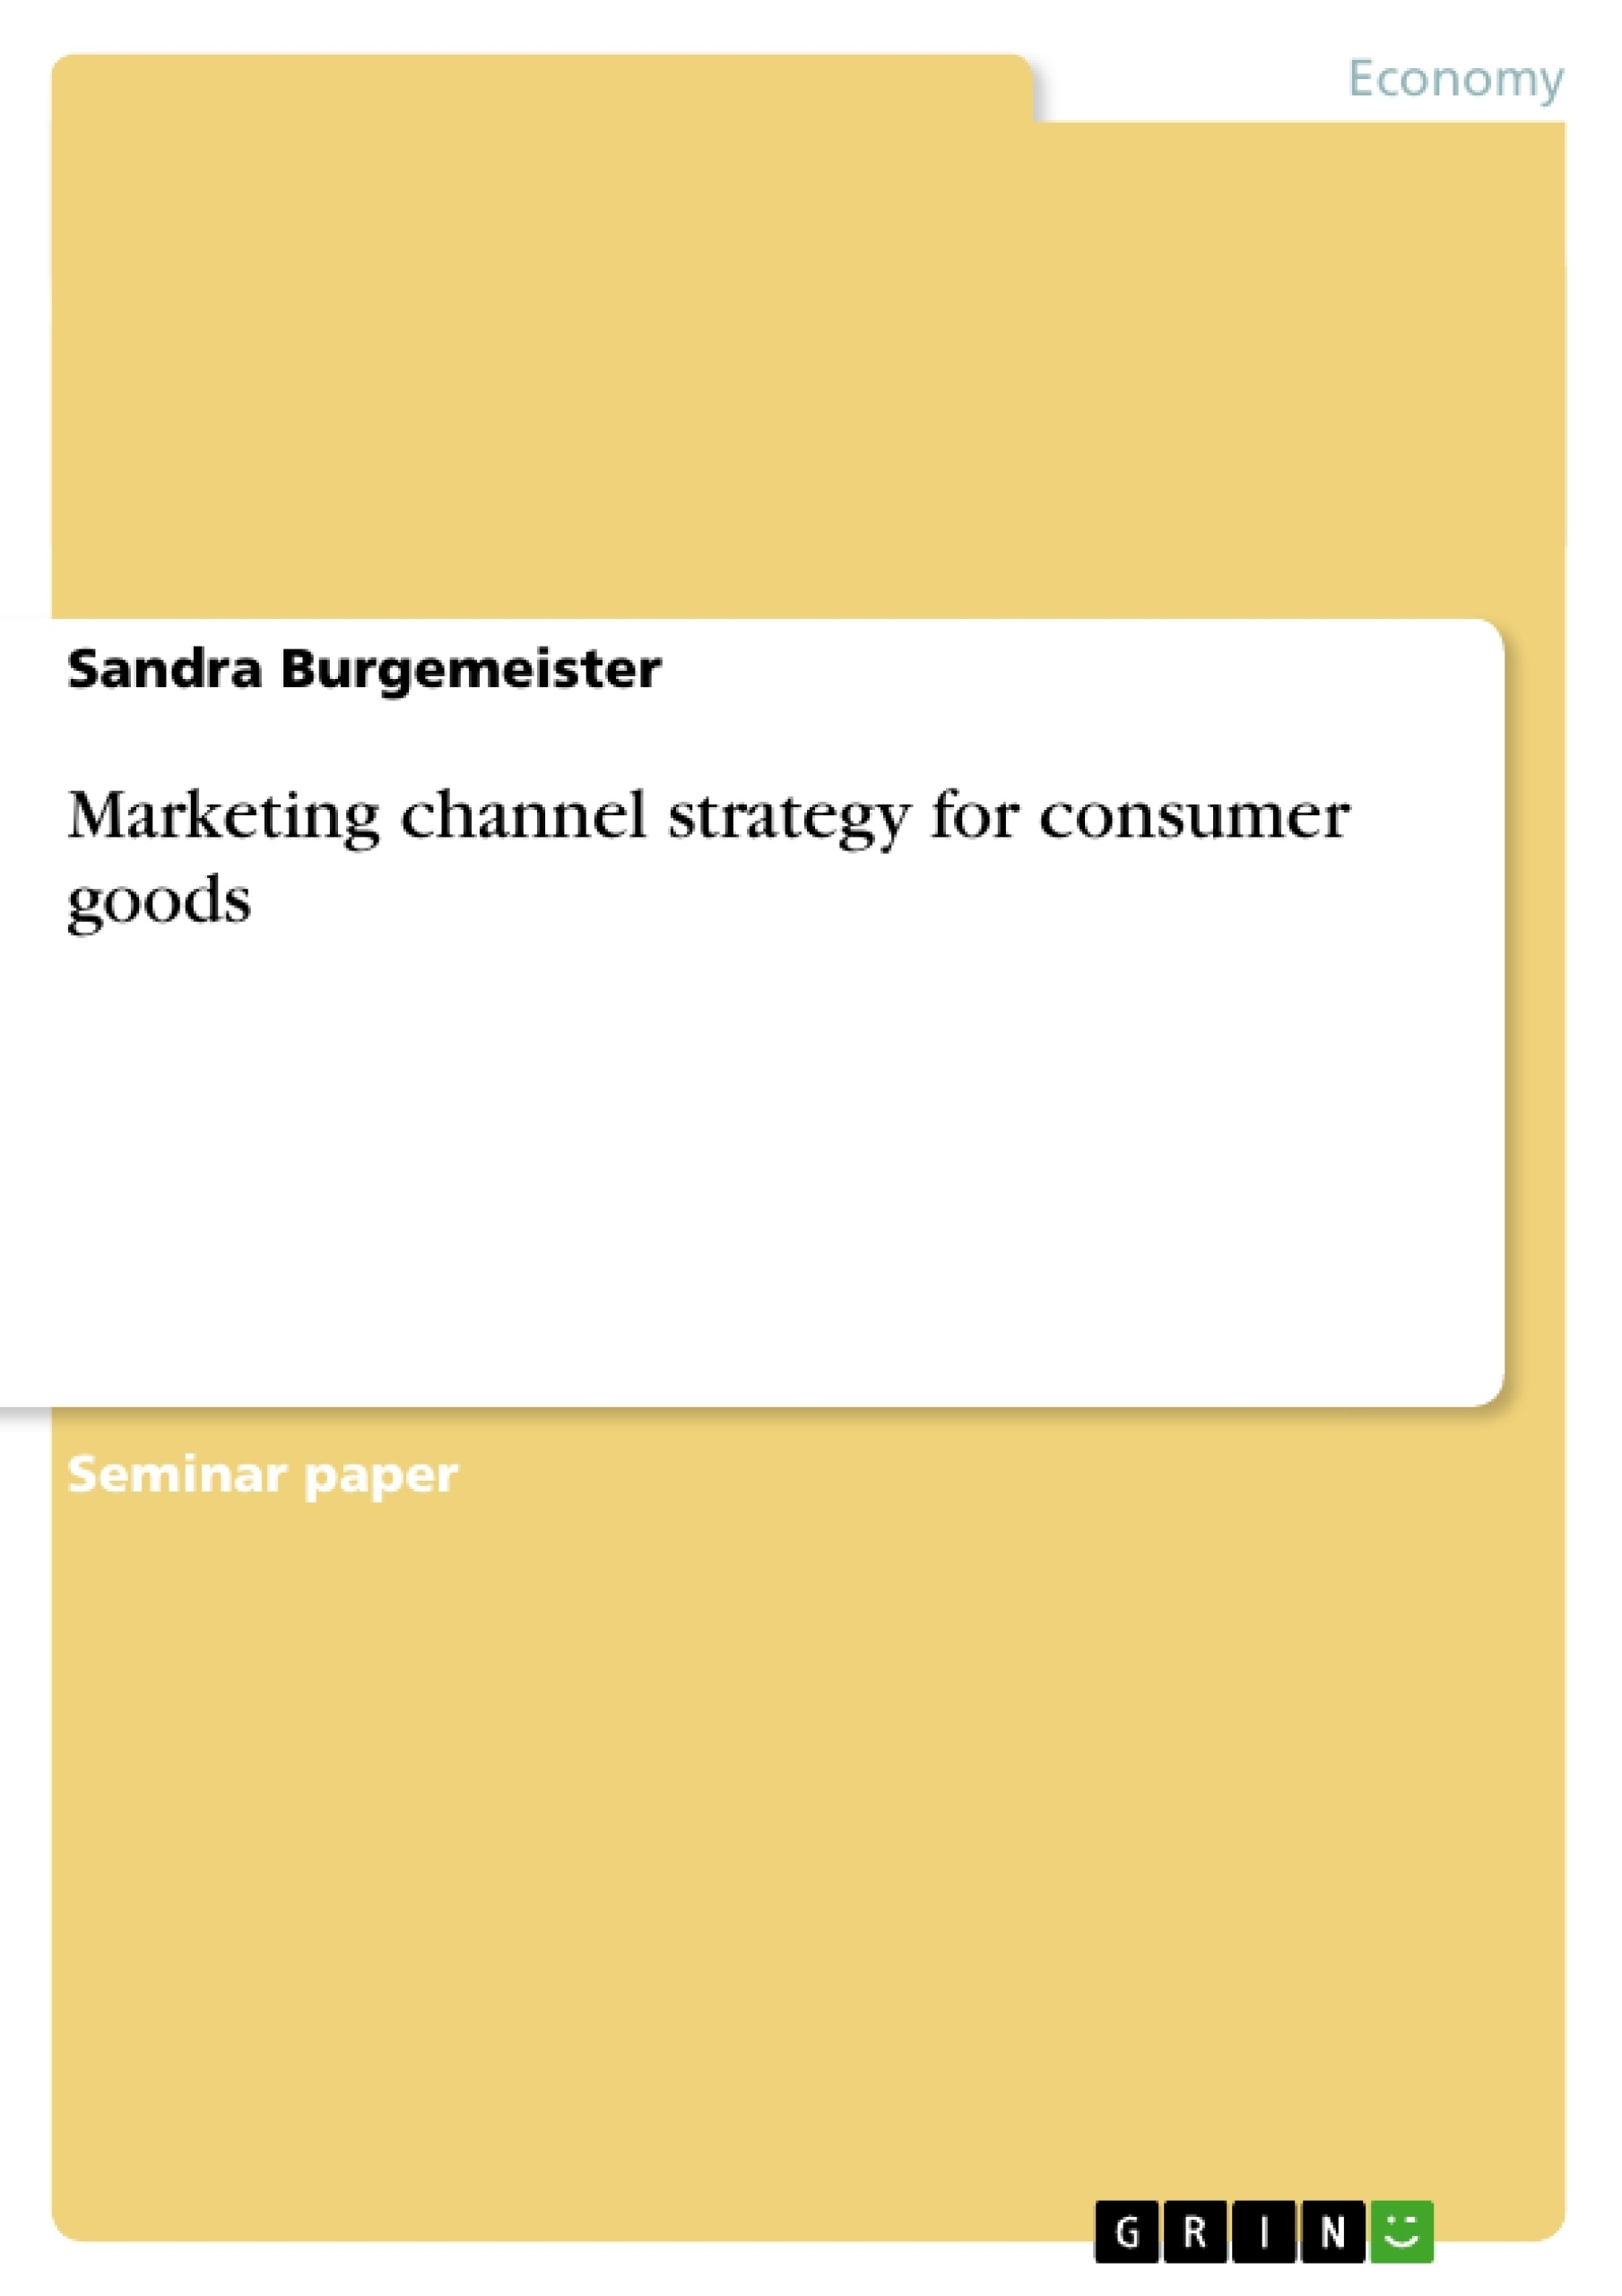 Title: Marketing channel strategy for consumer goods